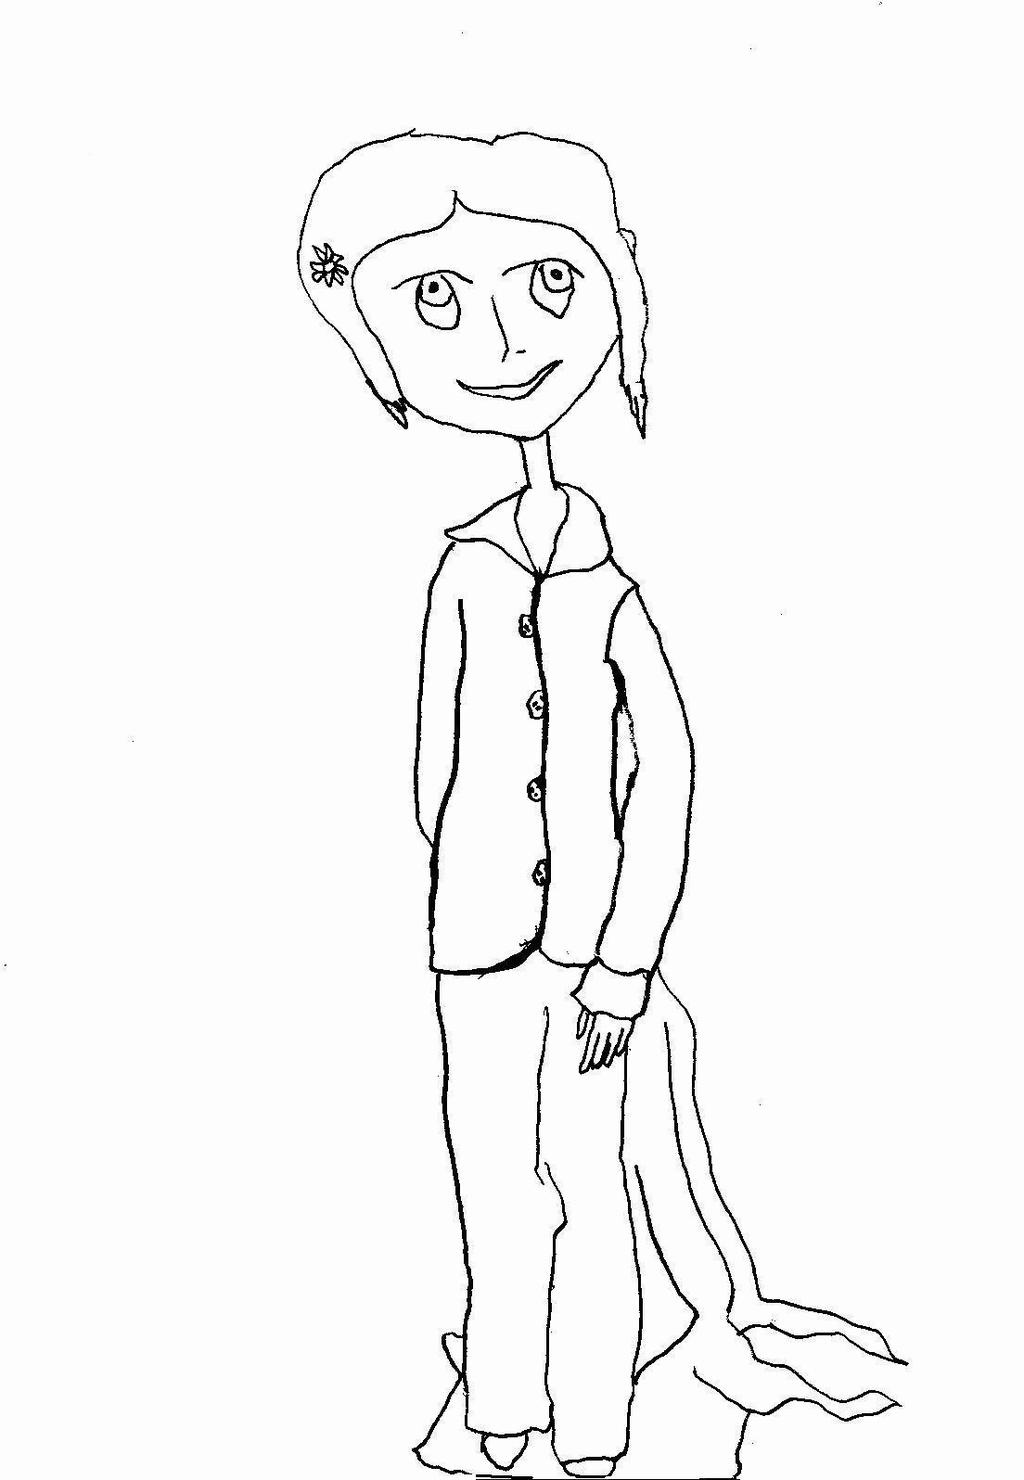 Coraline Coloring Pages Hand Drawing - Free Printable ...